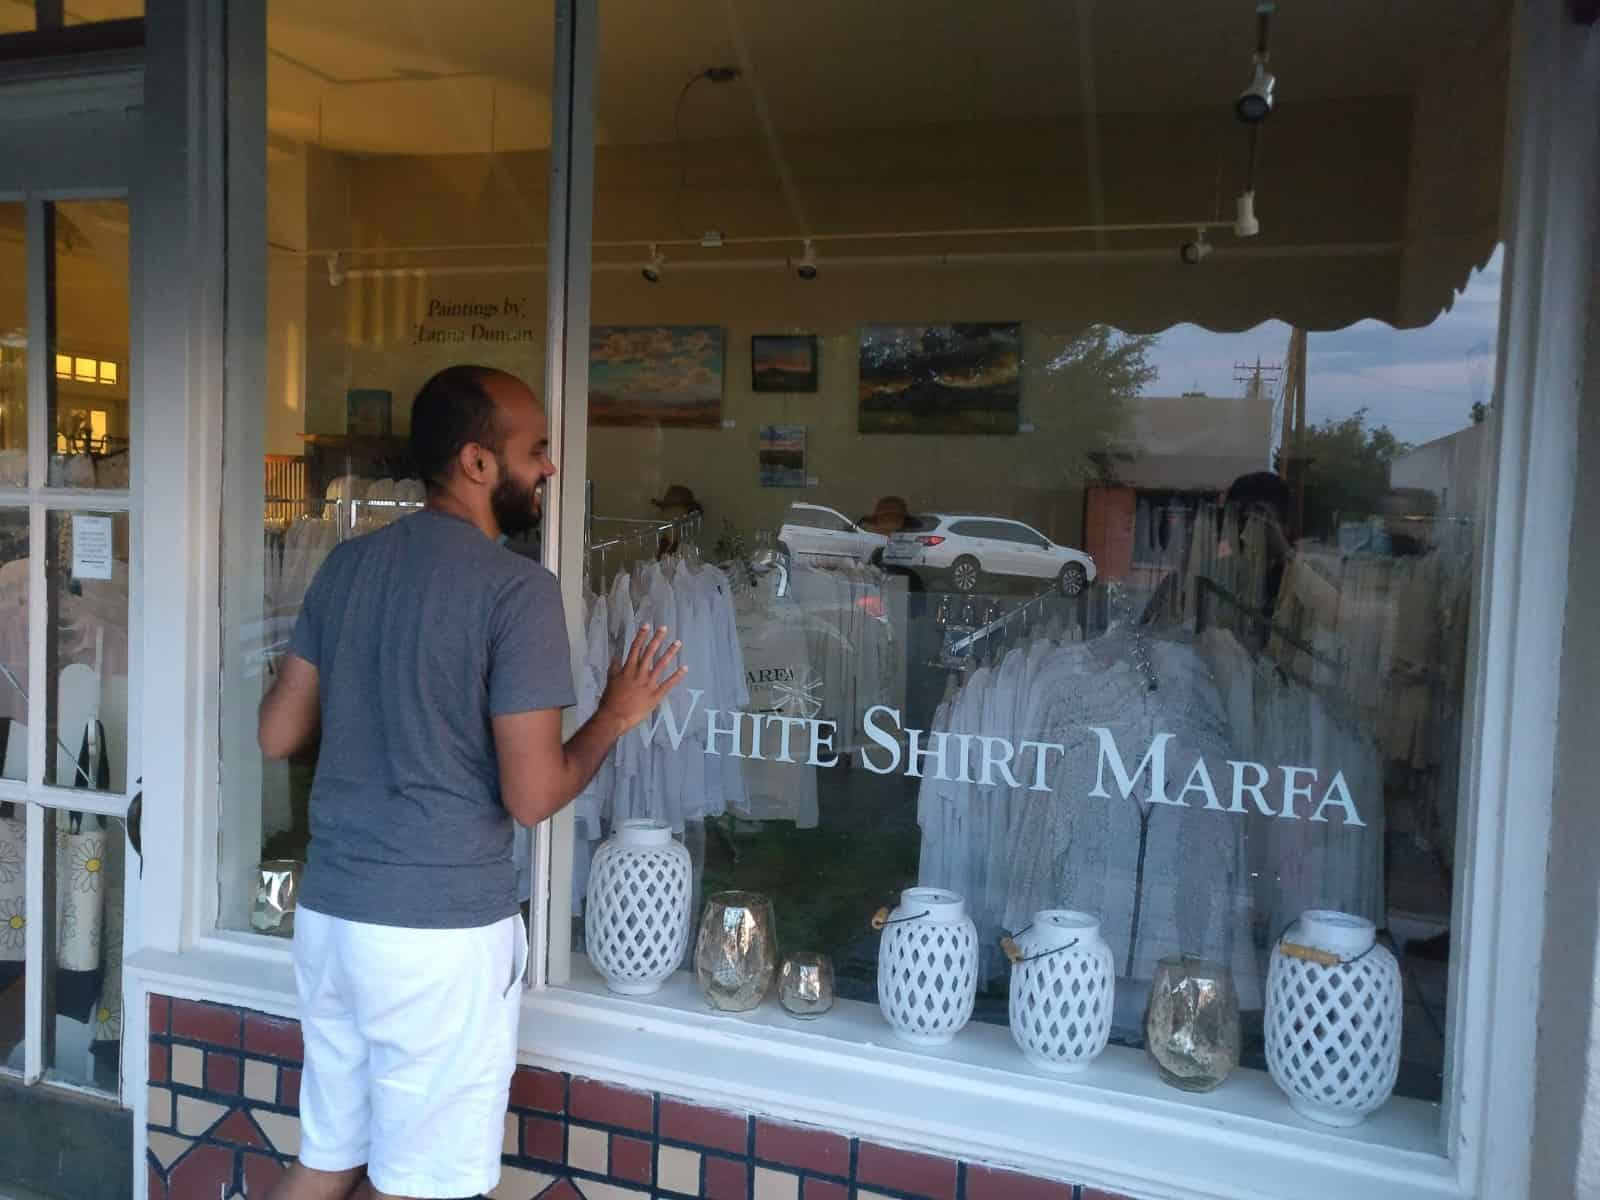 Deepak looking through a store selling white shirts